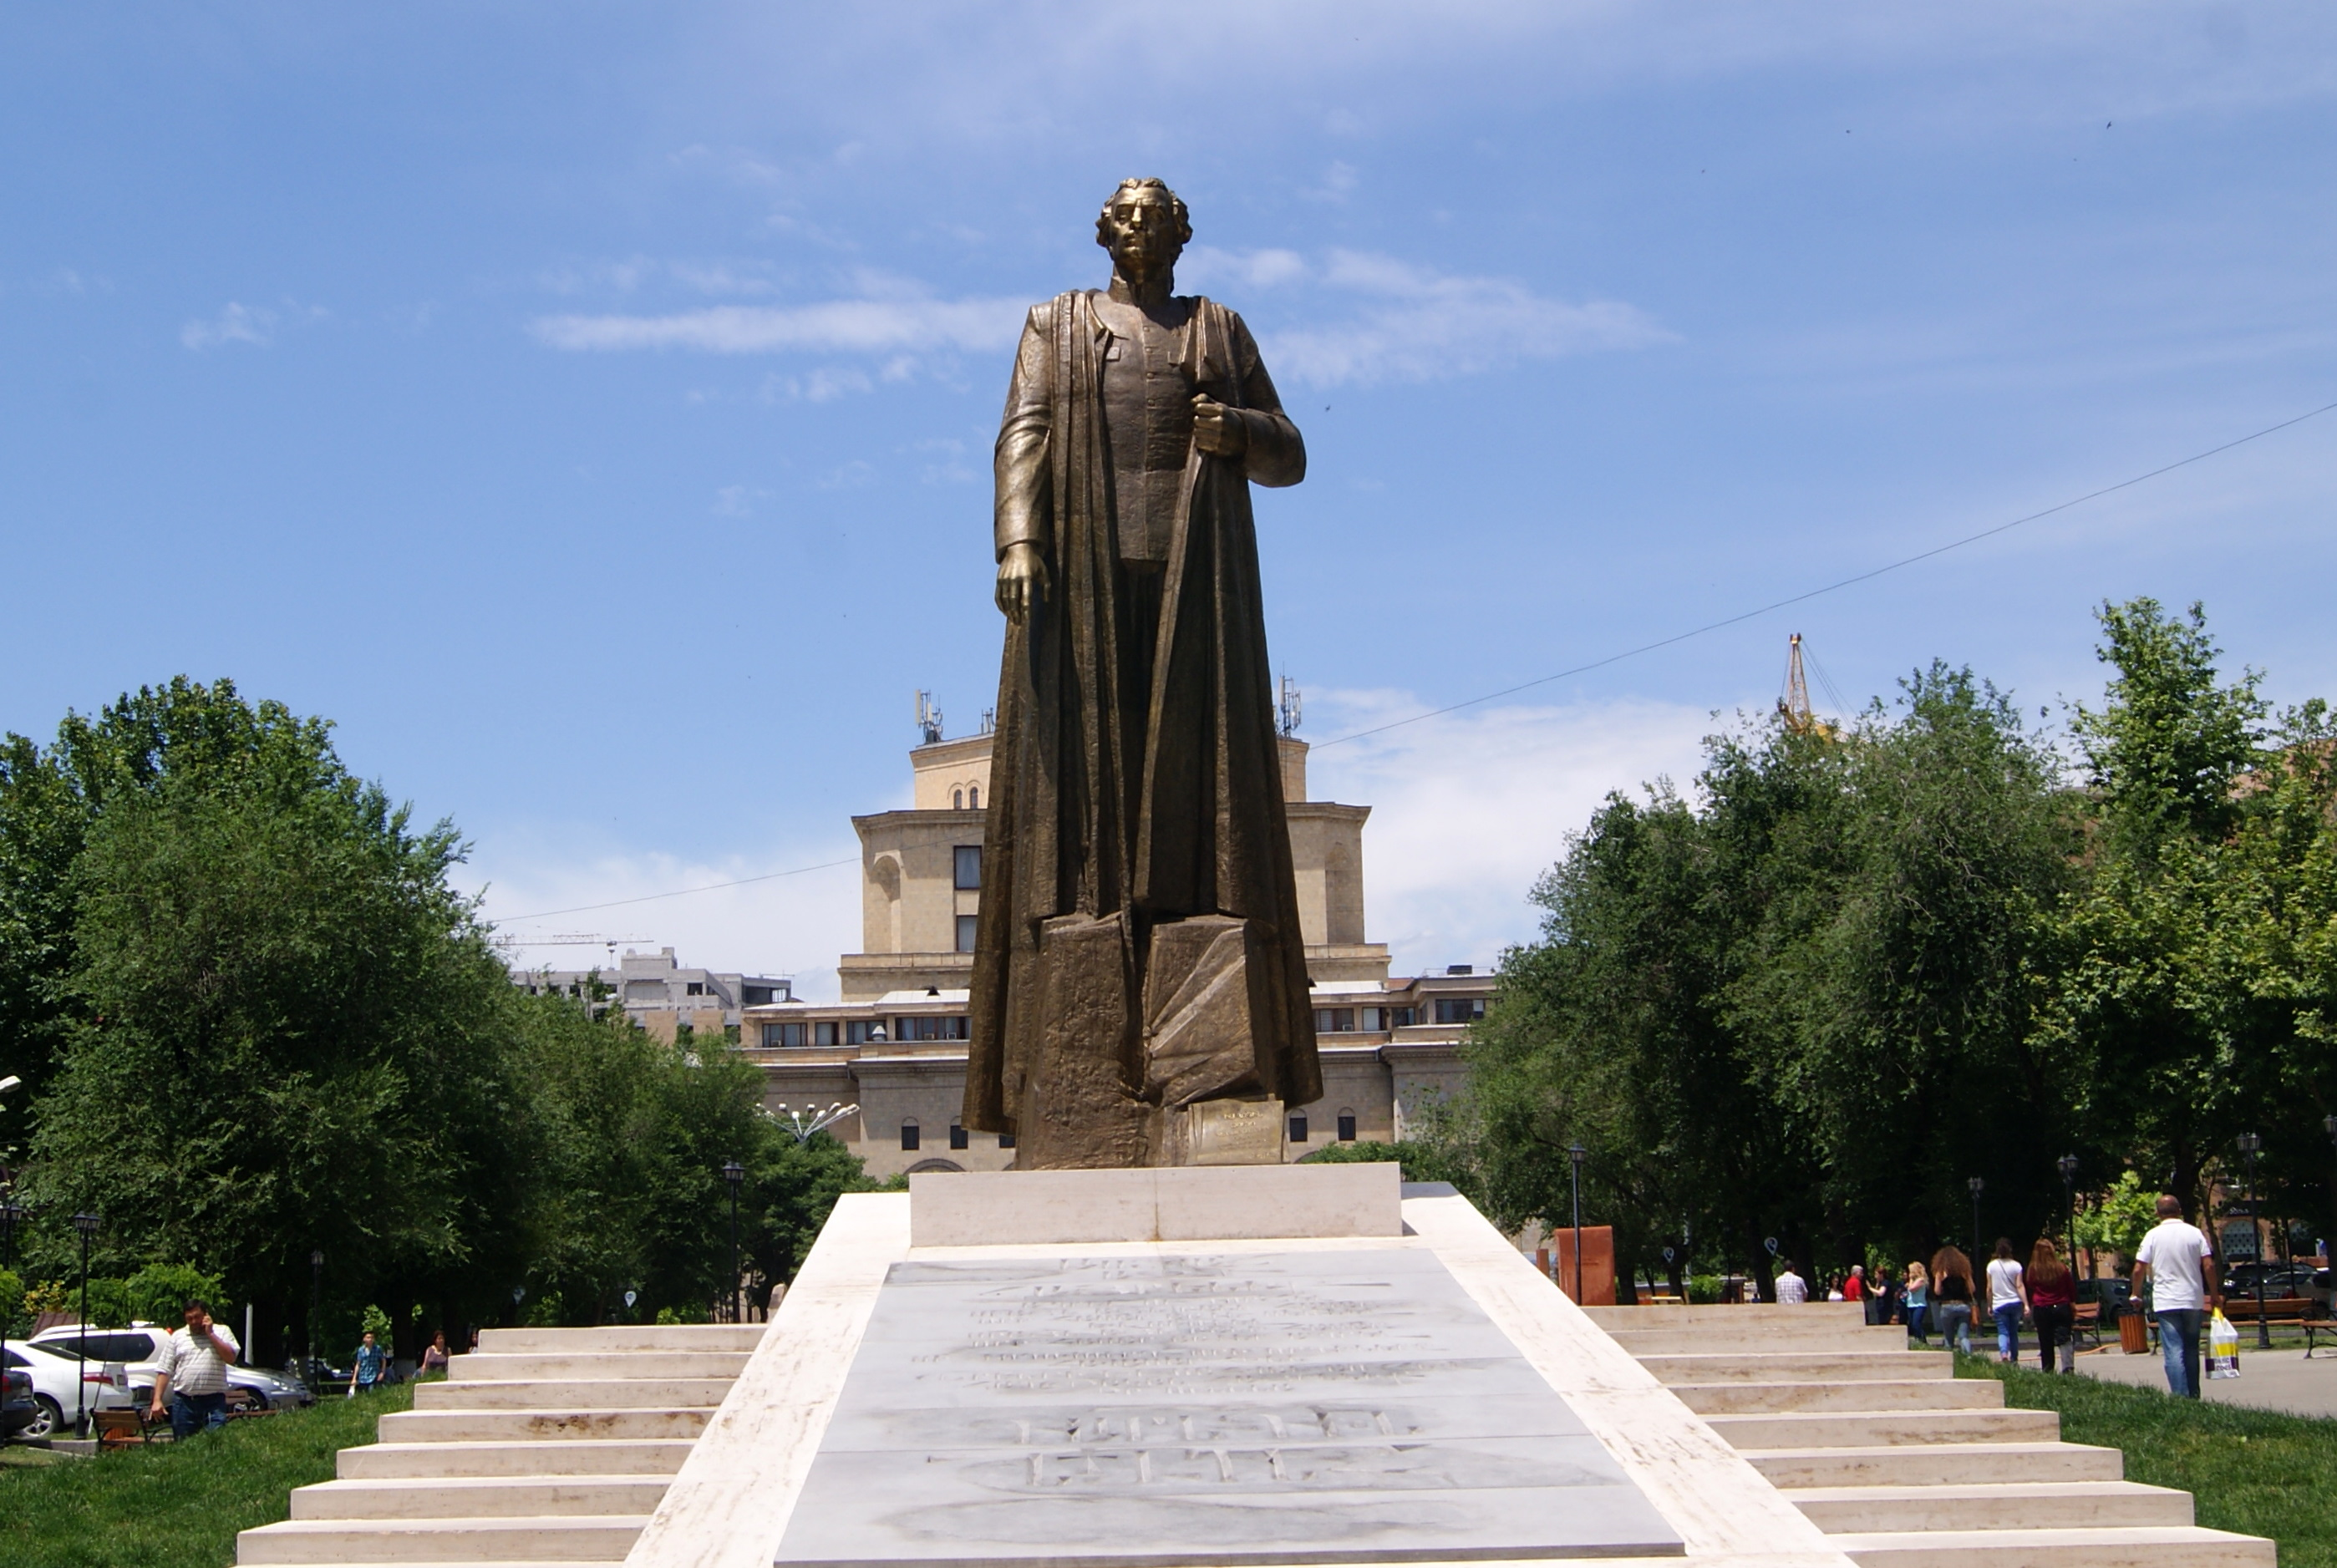 75th anniversary of VE: The monument to Garegin Nzdeh as a test for Nikol Pashinyan